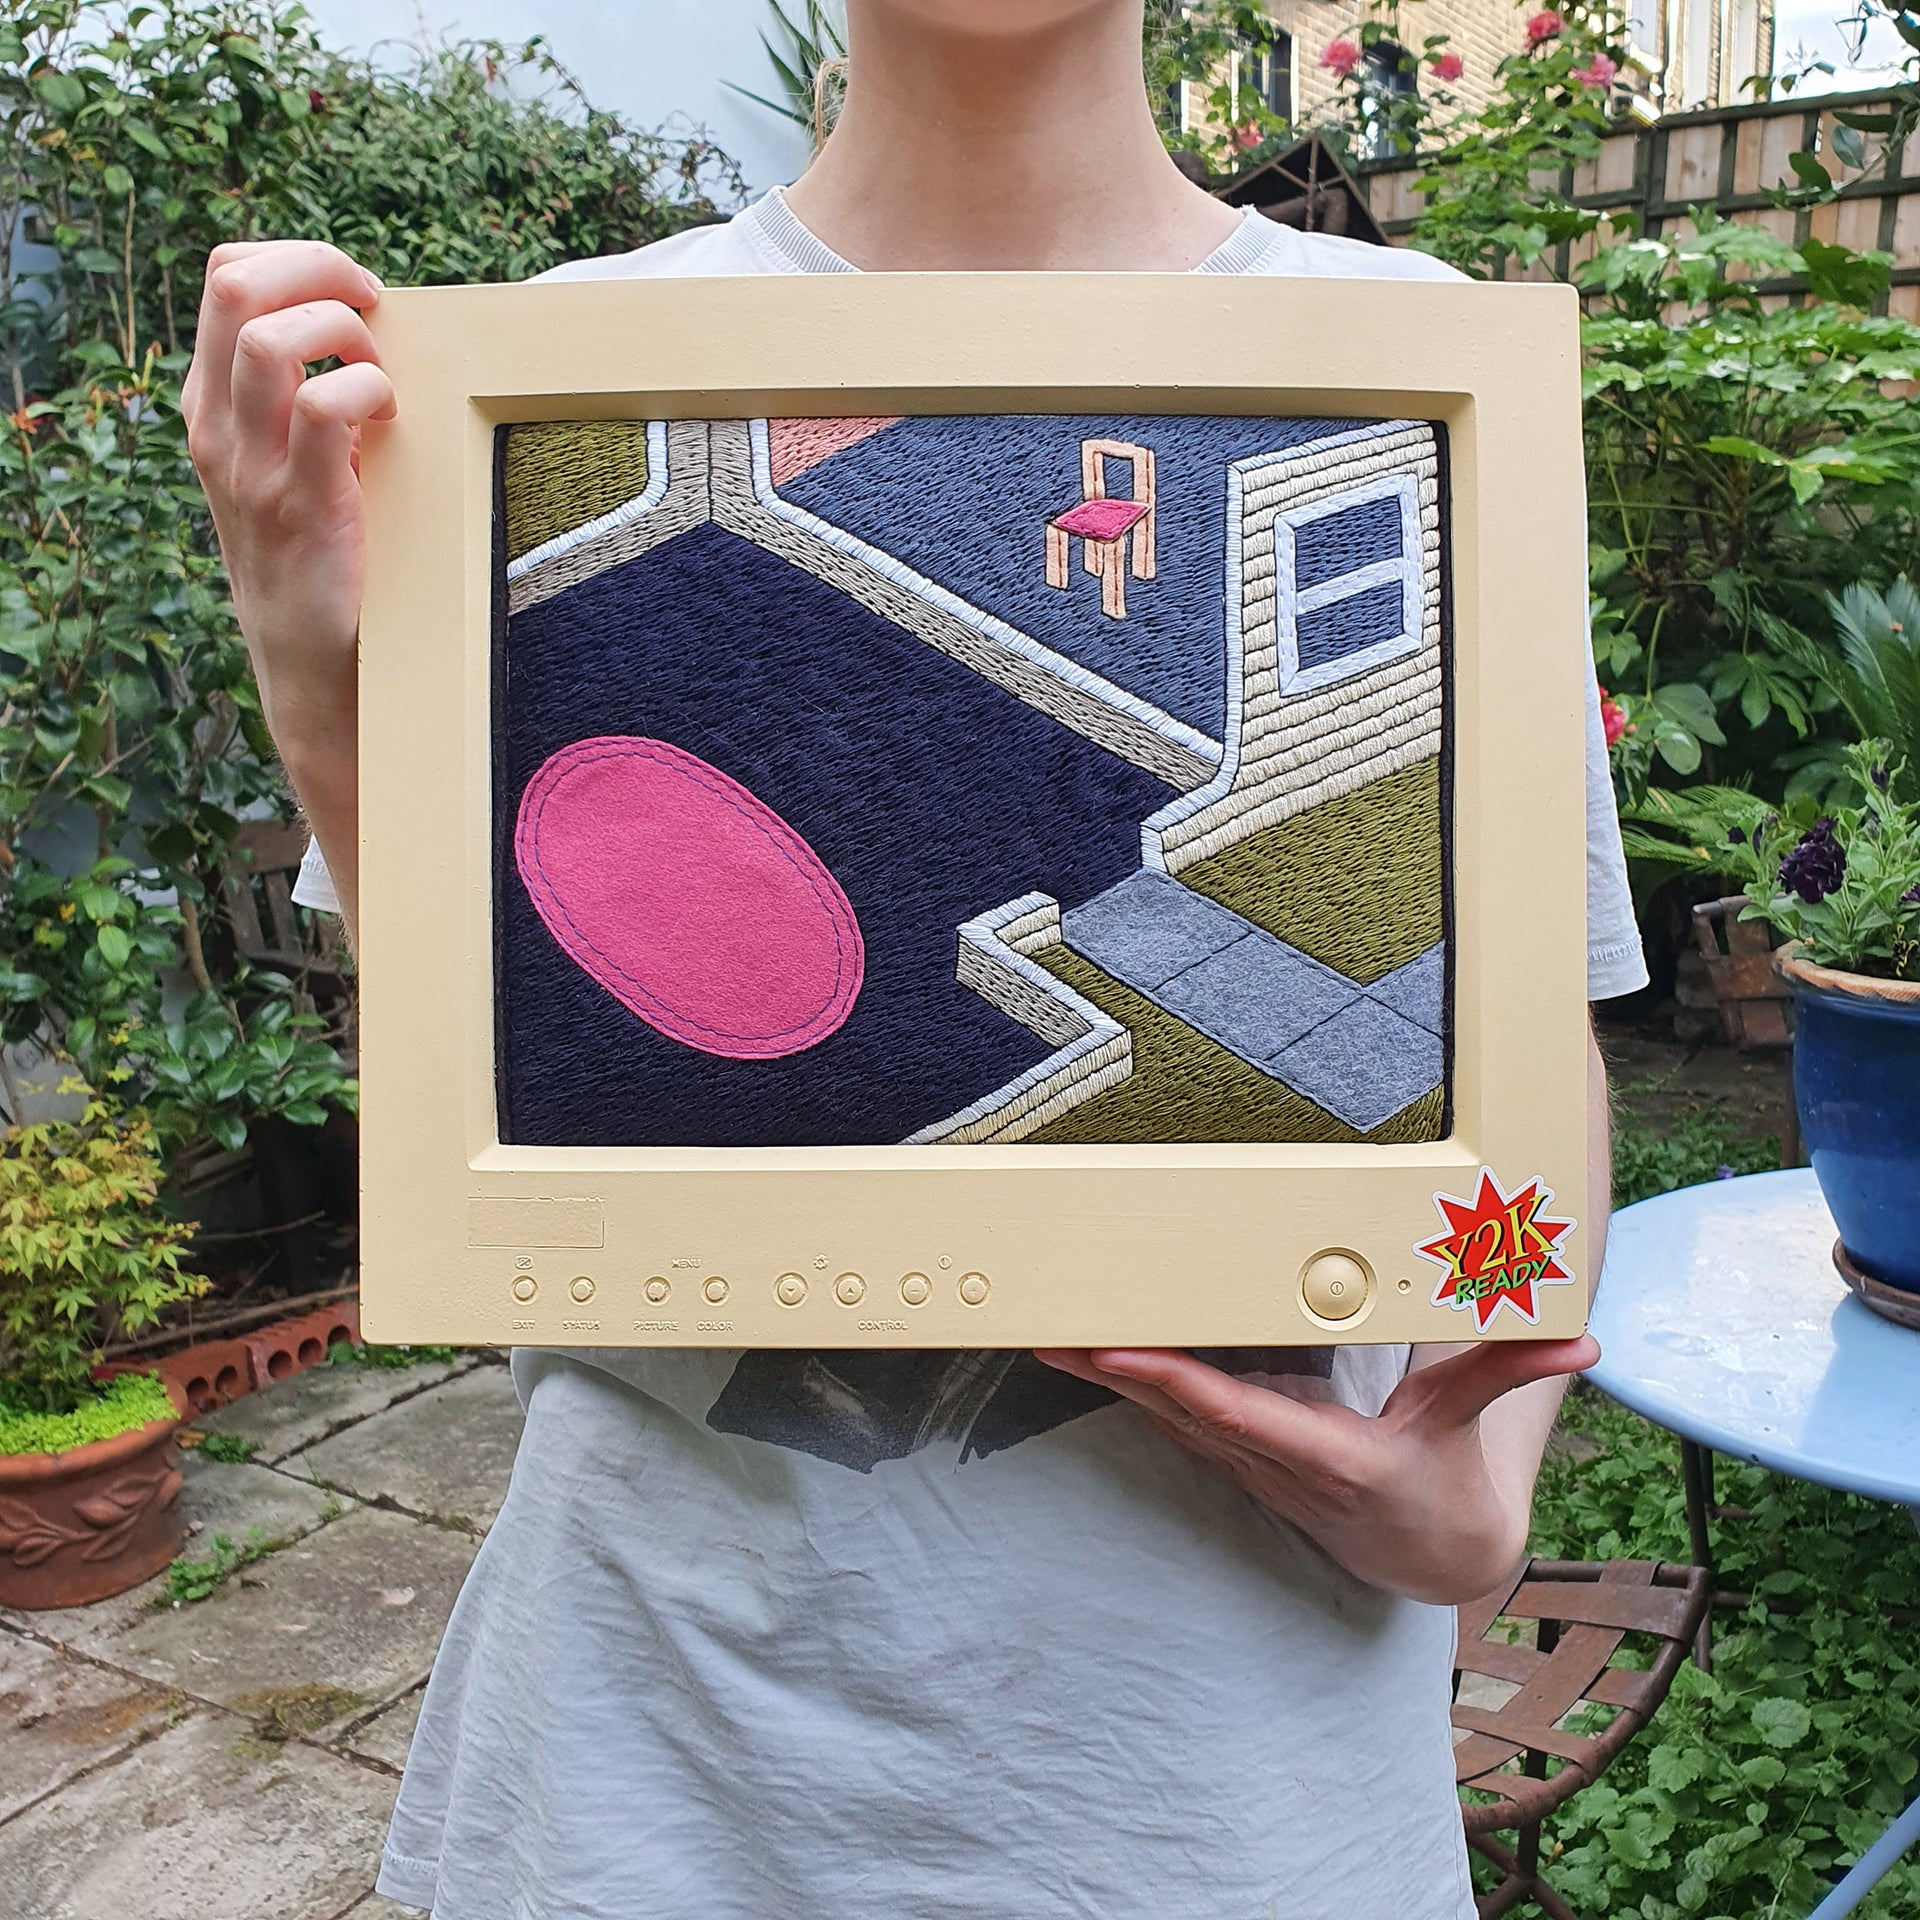 The artist holding the 'AFK Series 2: Living Room' artwork, while stood in her garden.